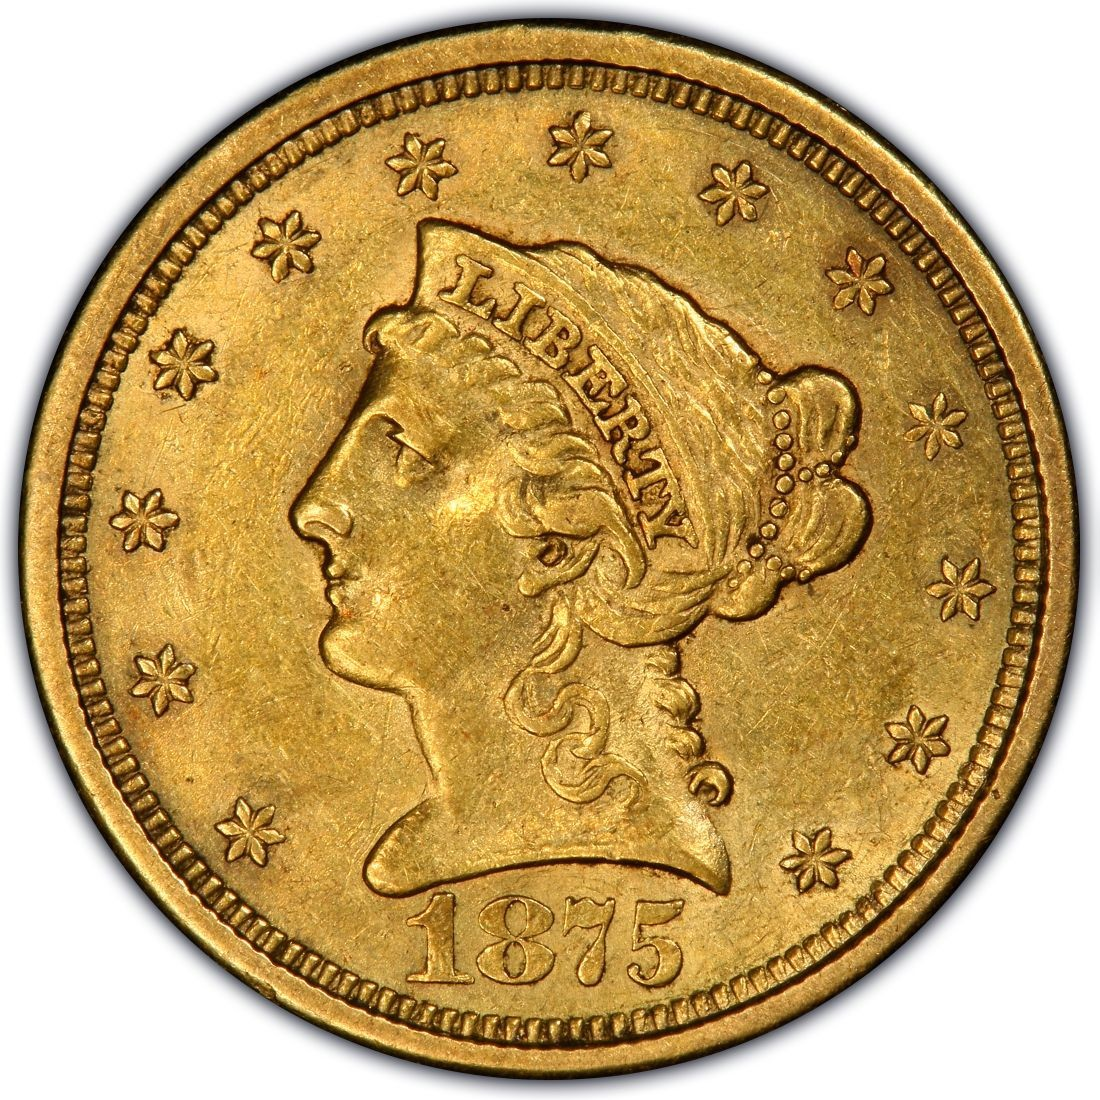 1875 Liberty Head 2 50 Gold Quarter Eagle Coin Values And